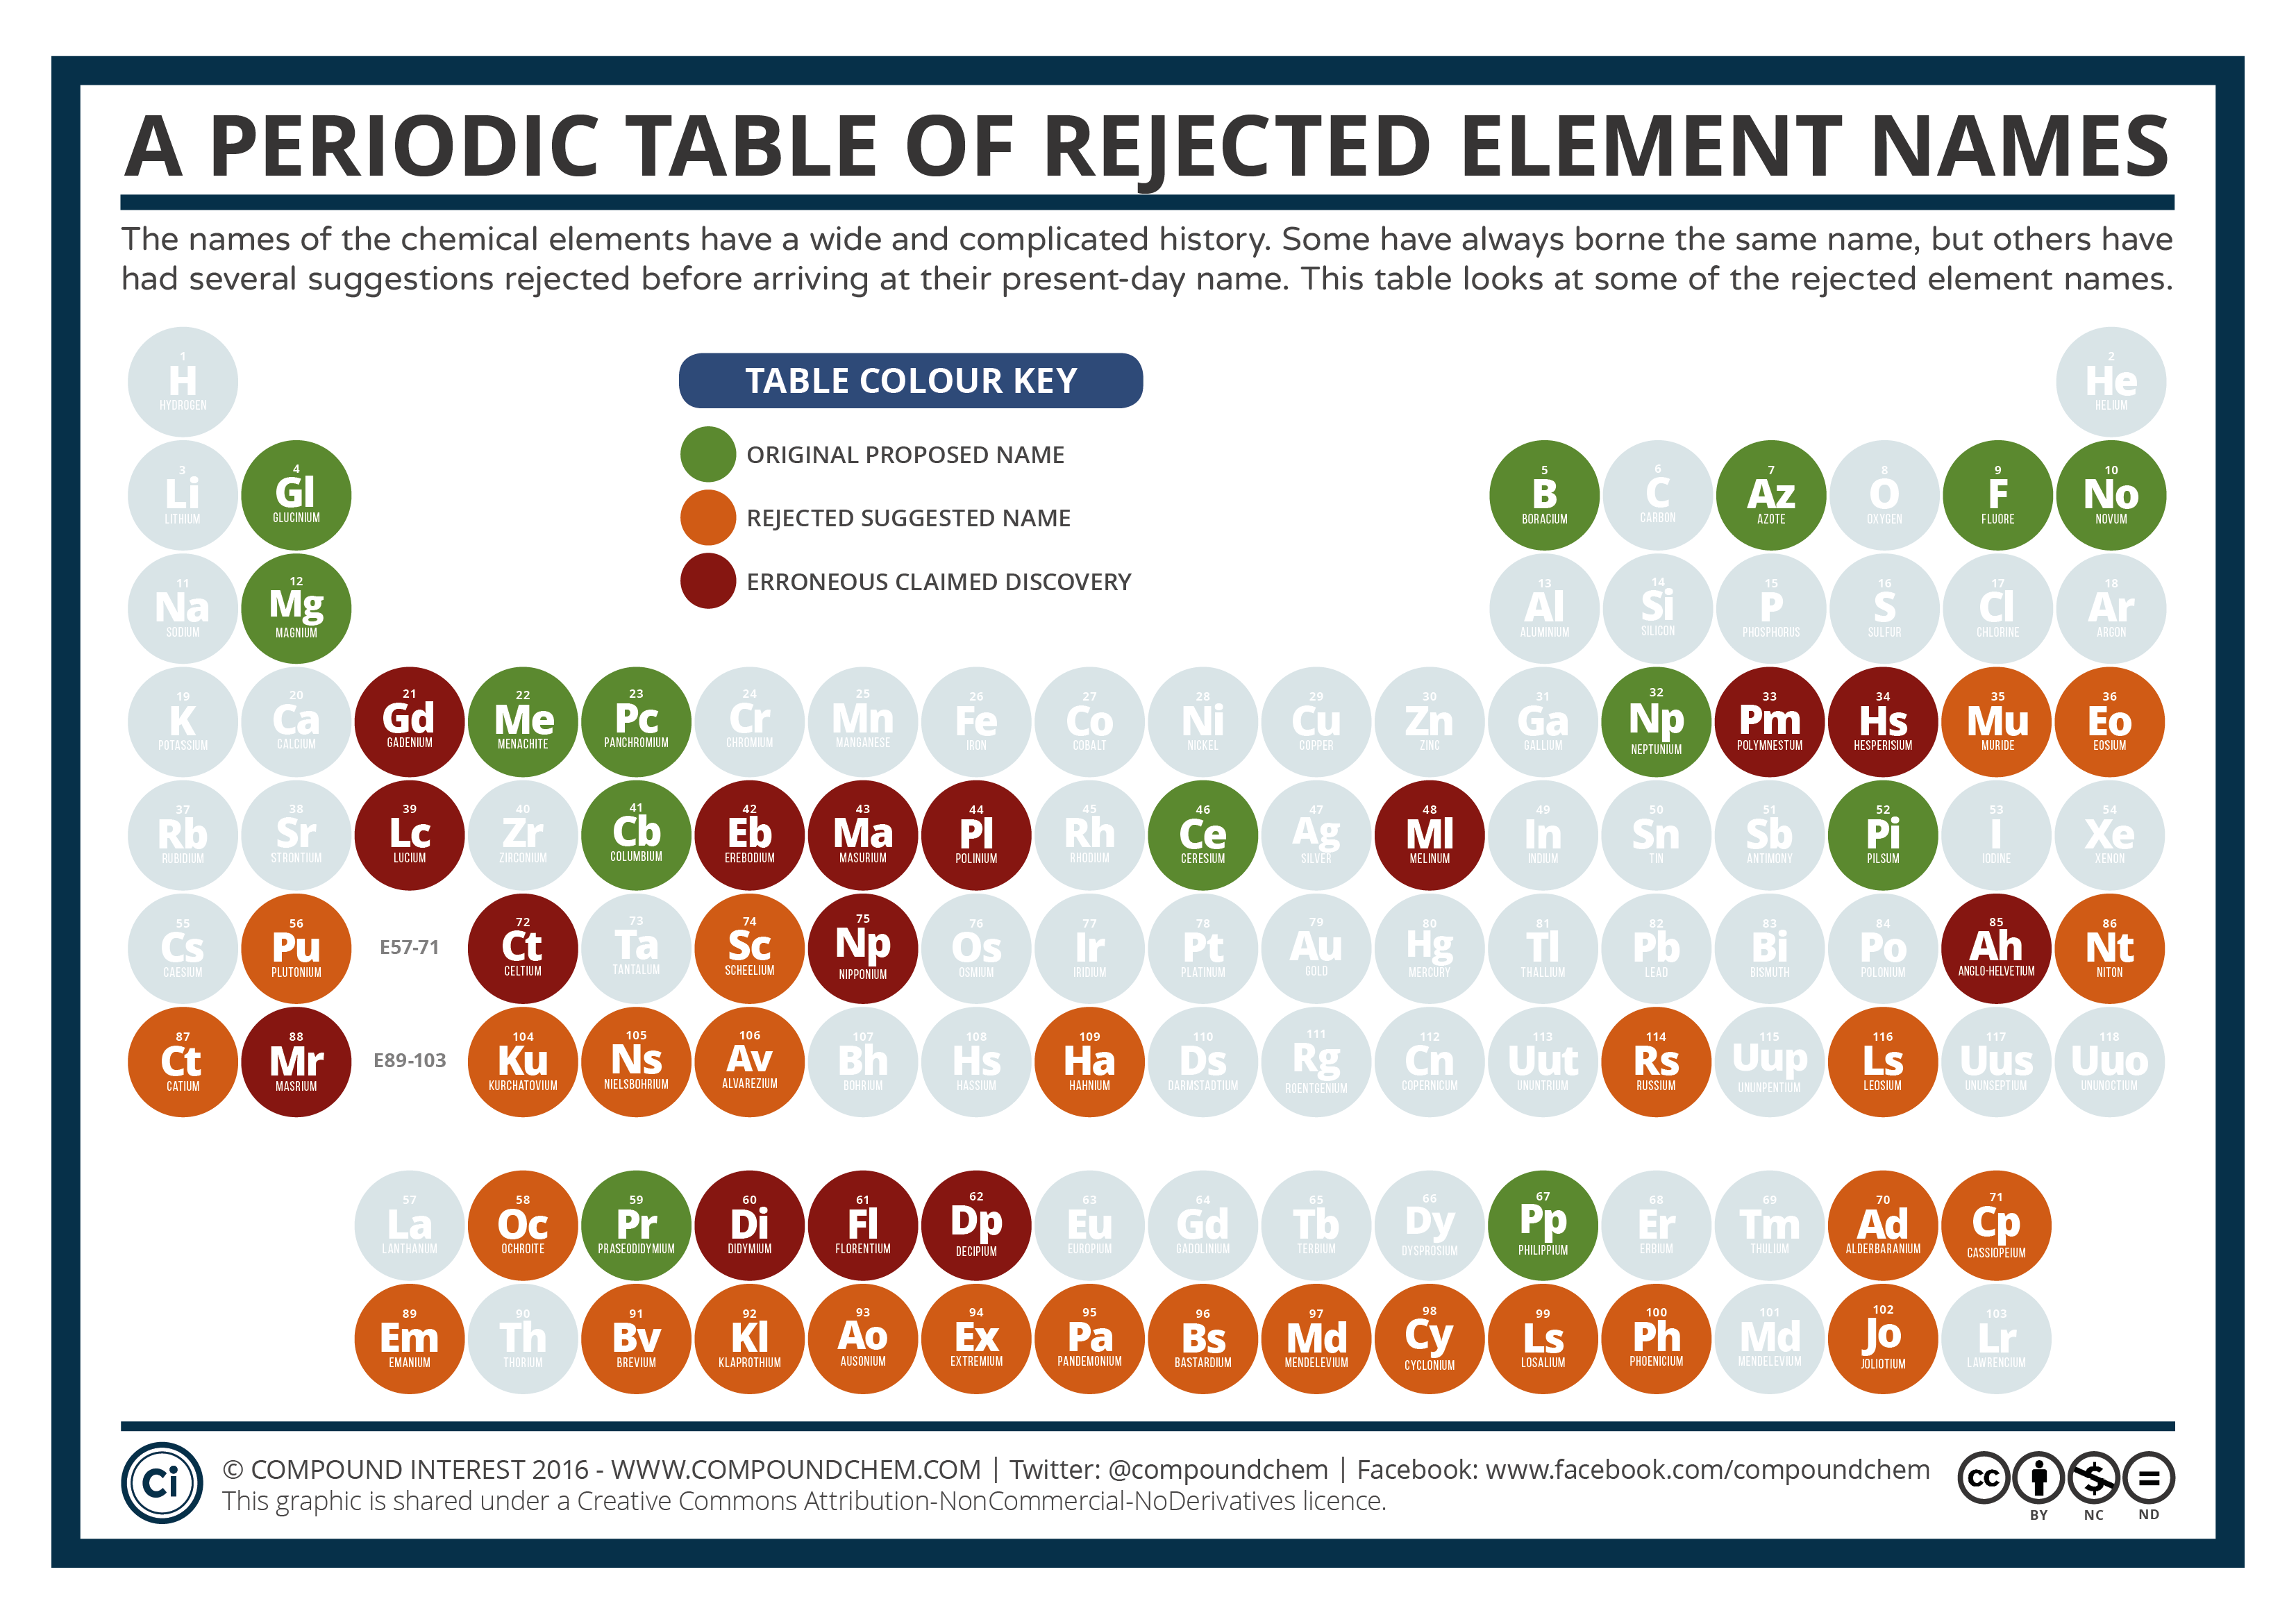 Compound interest a periodic table of rejected element names a periodic table of rejected element names gamestrikefo Choice Image